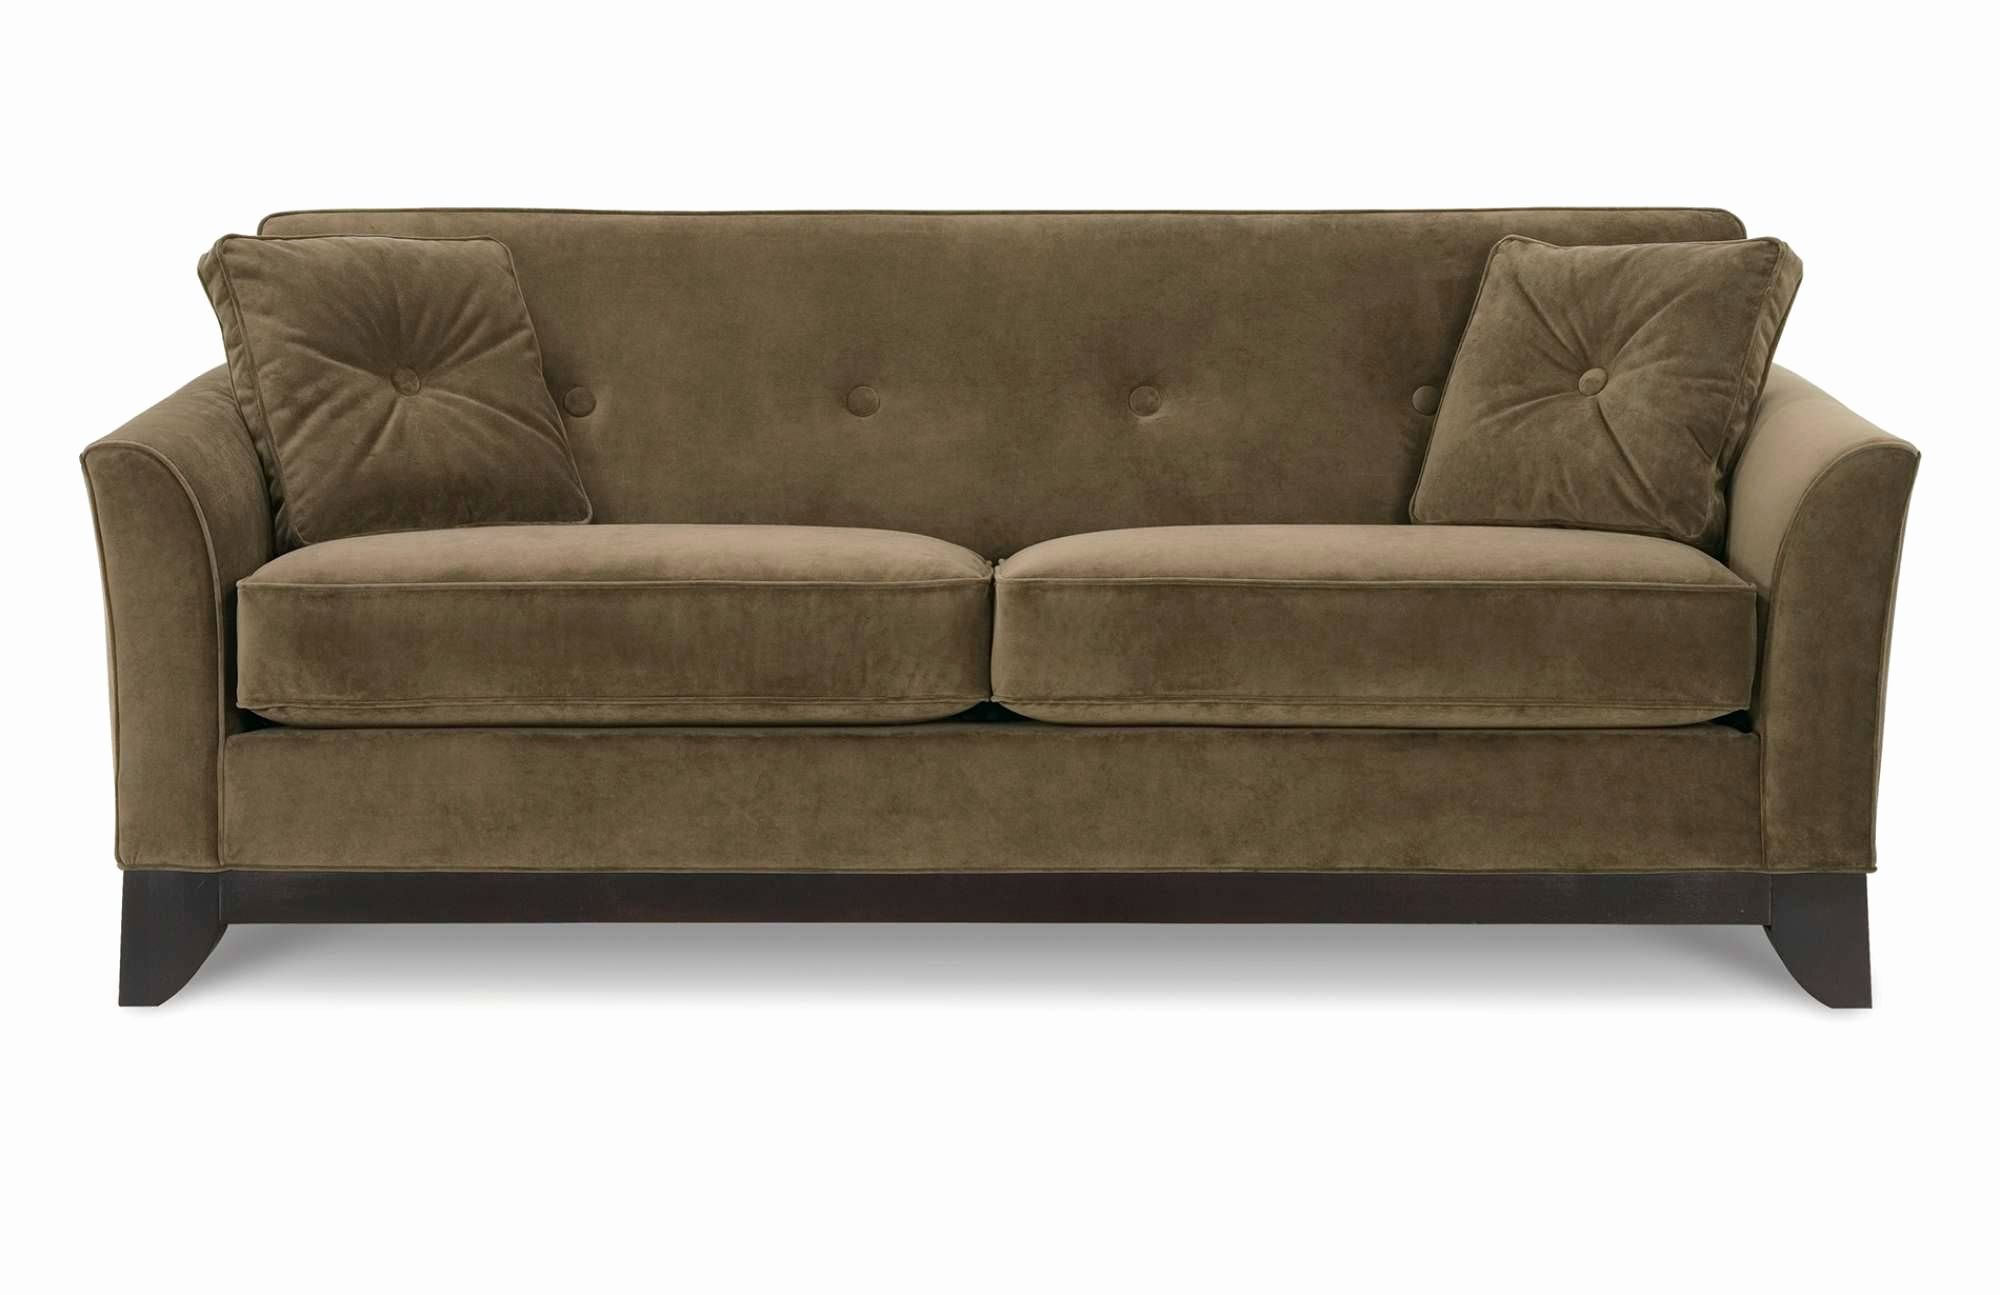 New Fancy Sofa Set Shot 2018 Popular Fancy Sofas Sofa Set